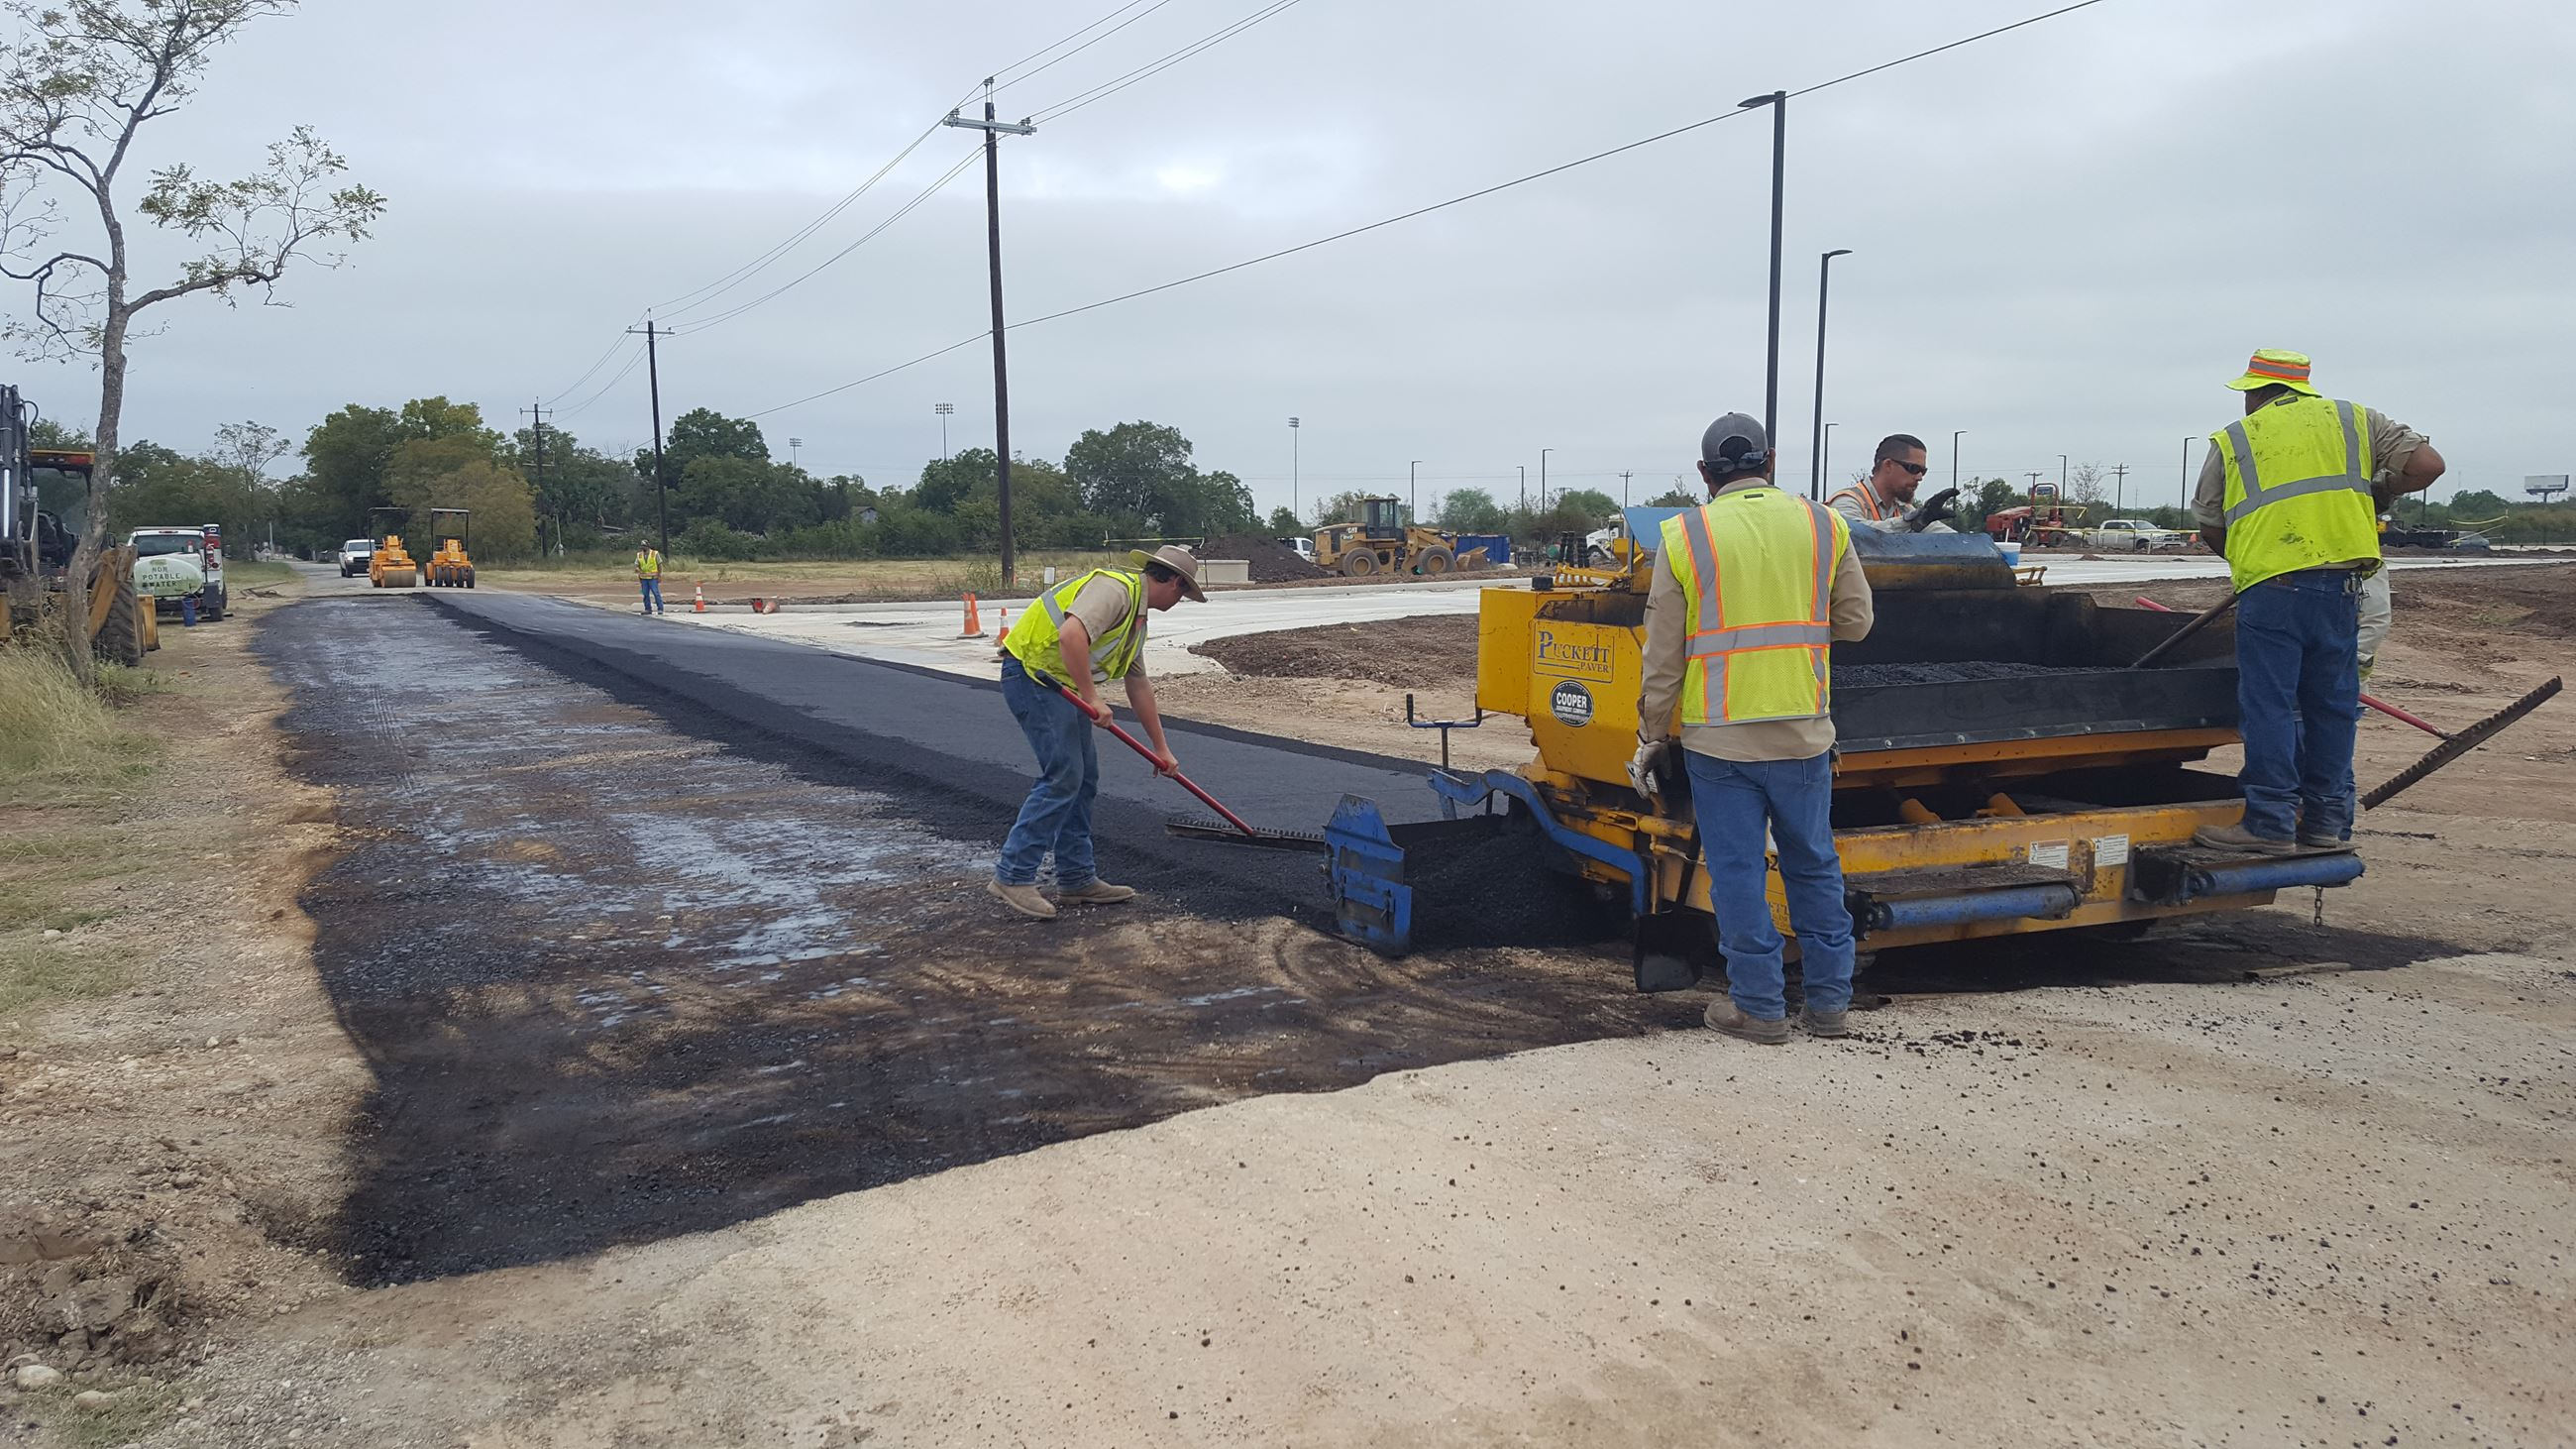 Asphalt lay down at Main St at sports complex